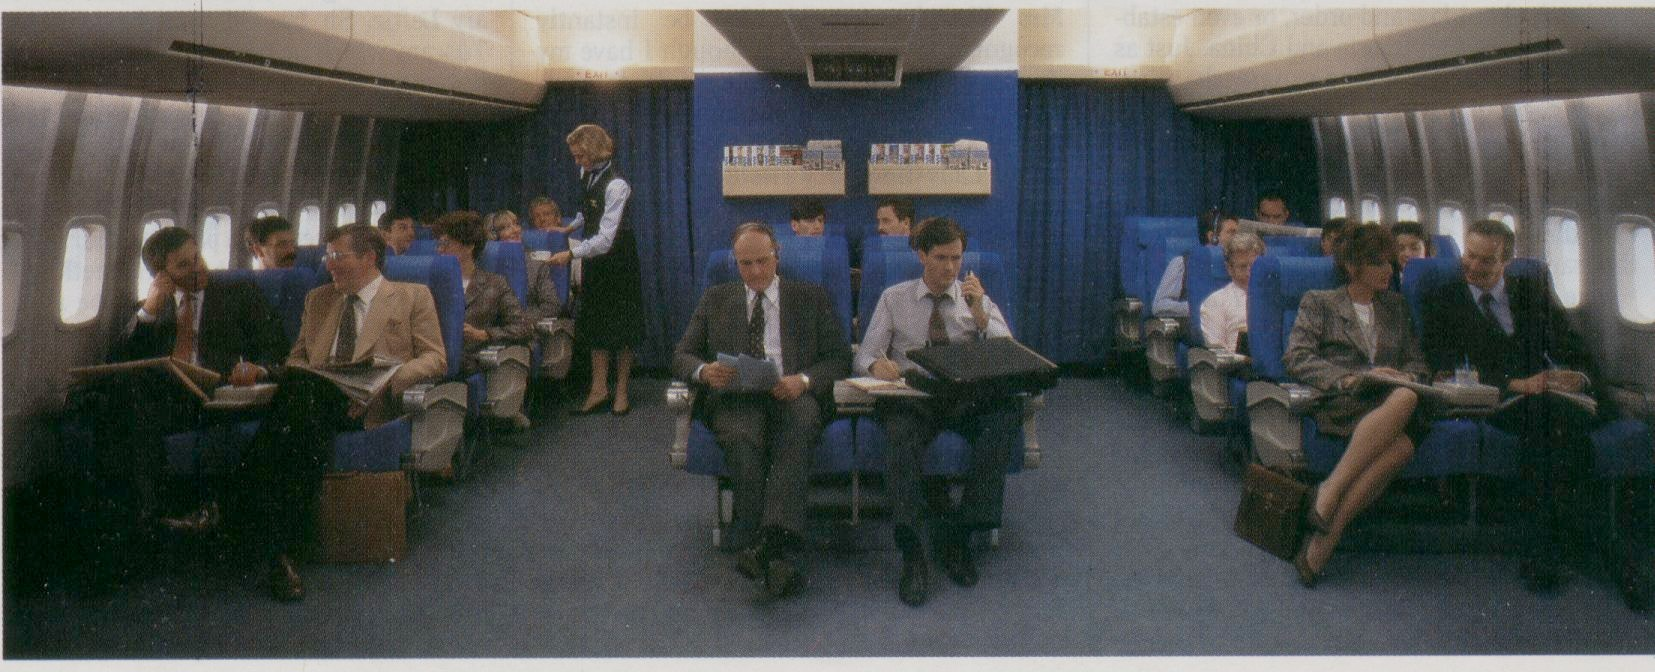 1986 When Pan Am converted the Clipper Class (Business Class) cabin from 8 across to 6 across seating bright blue seat covers were adopted as seen in this photo.  In 1988 Pan Am converted the business class  seat covers to a more demure herringbone pattern.